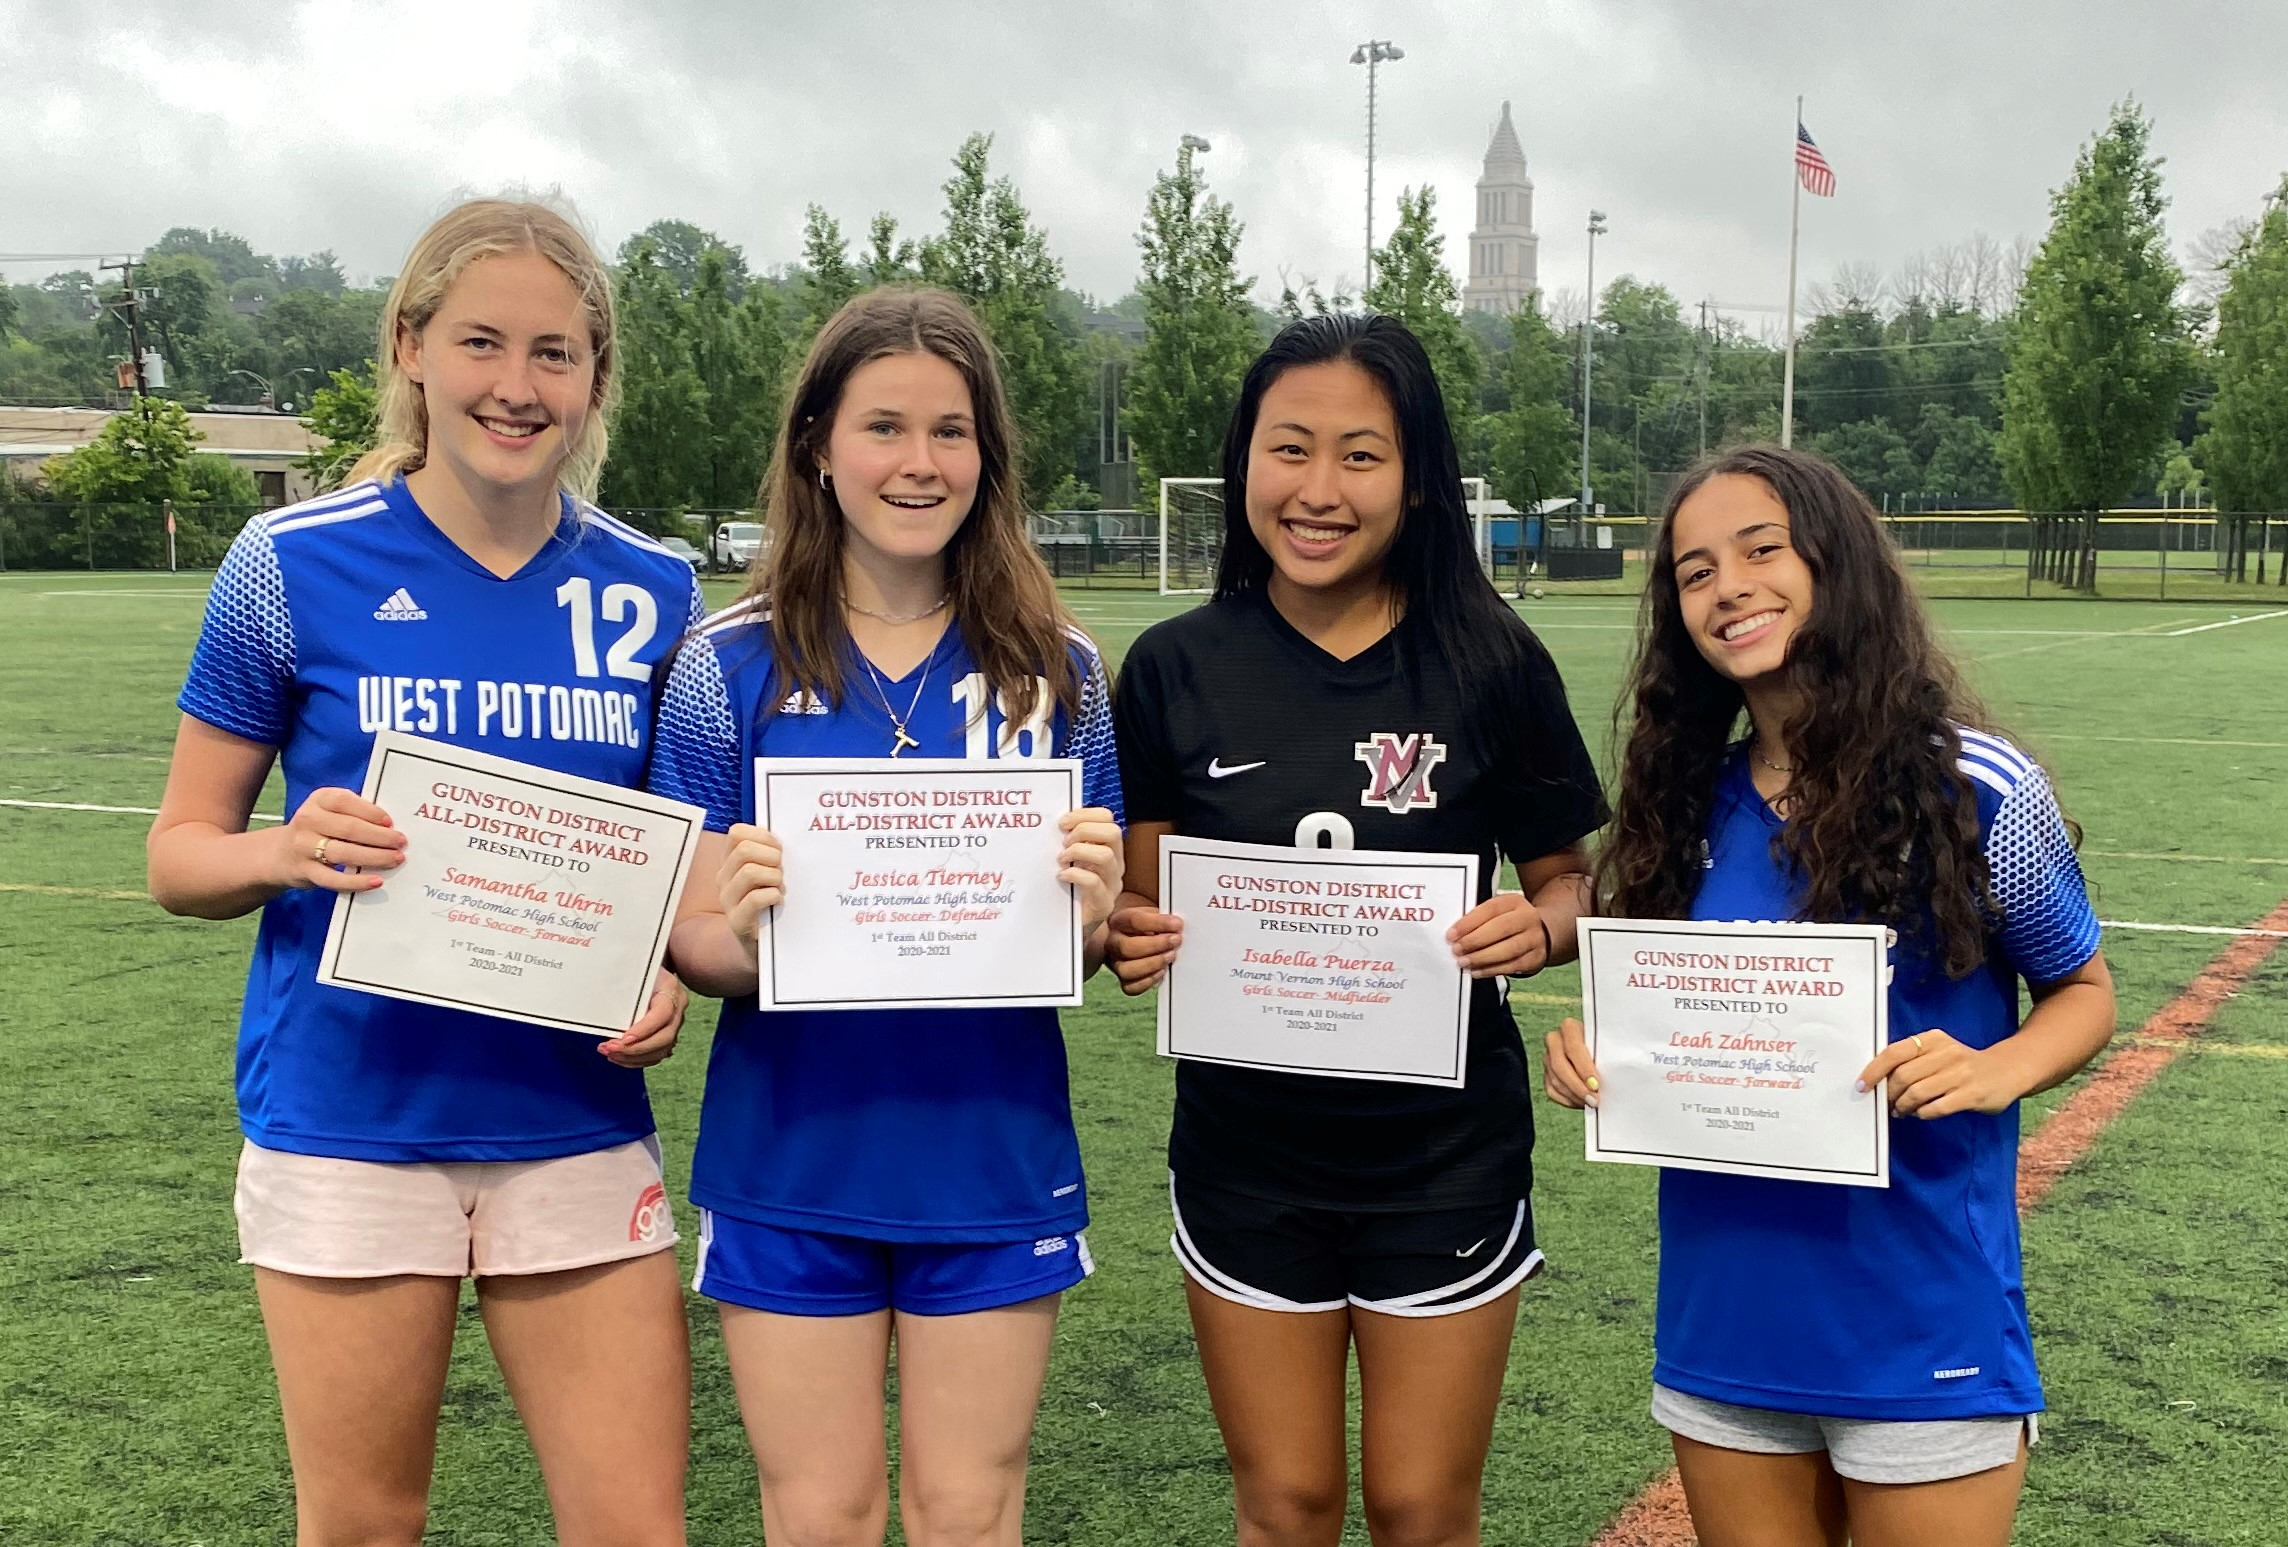 Gunston players dominate HS All-District teams!